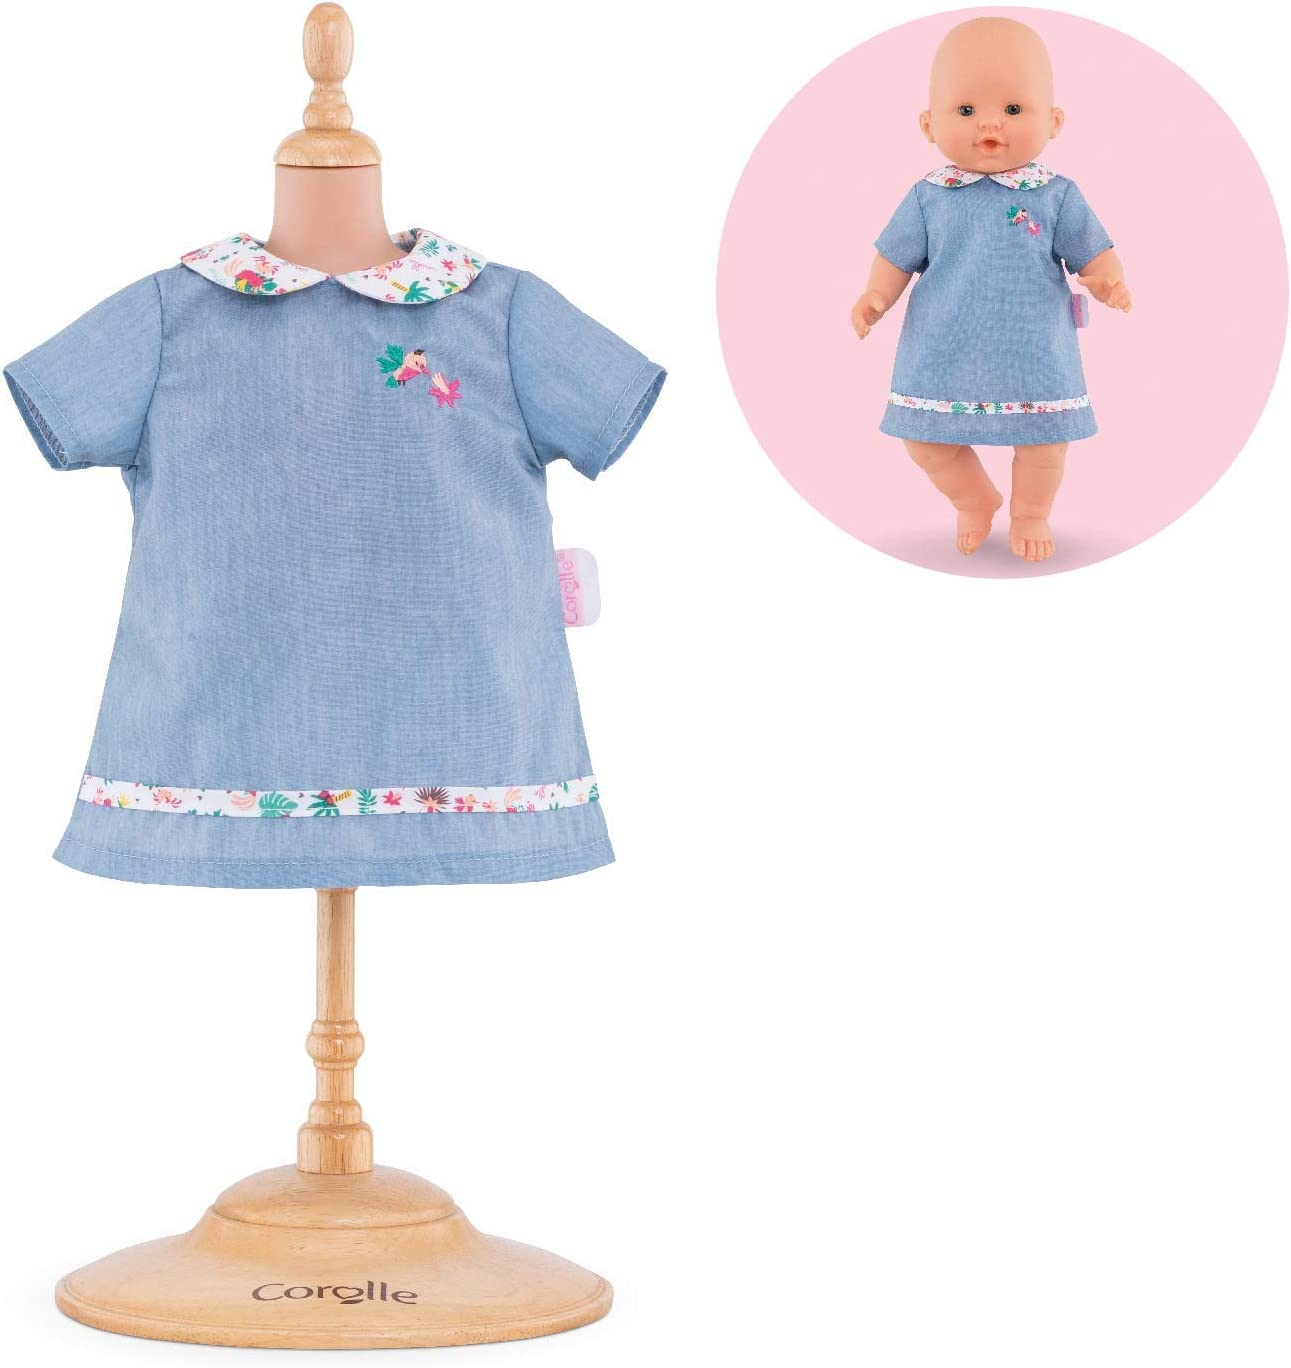 Corolle Mon Grand Poupon 17 Happy Reindeer Dress Toy Baby Doll